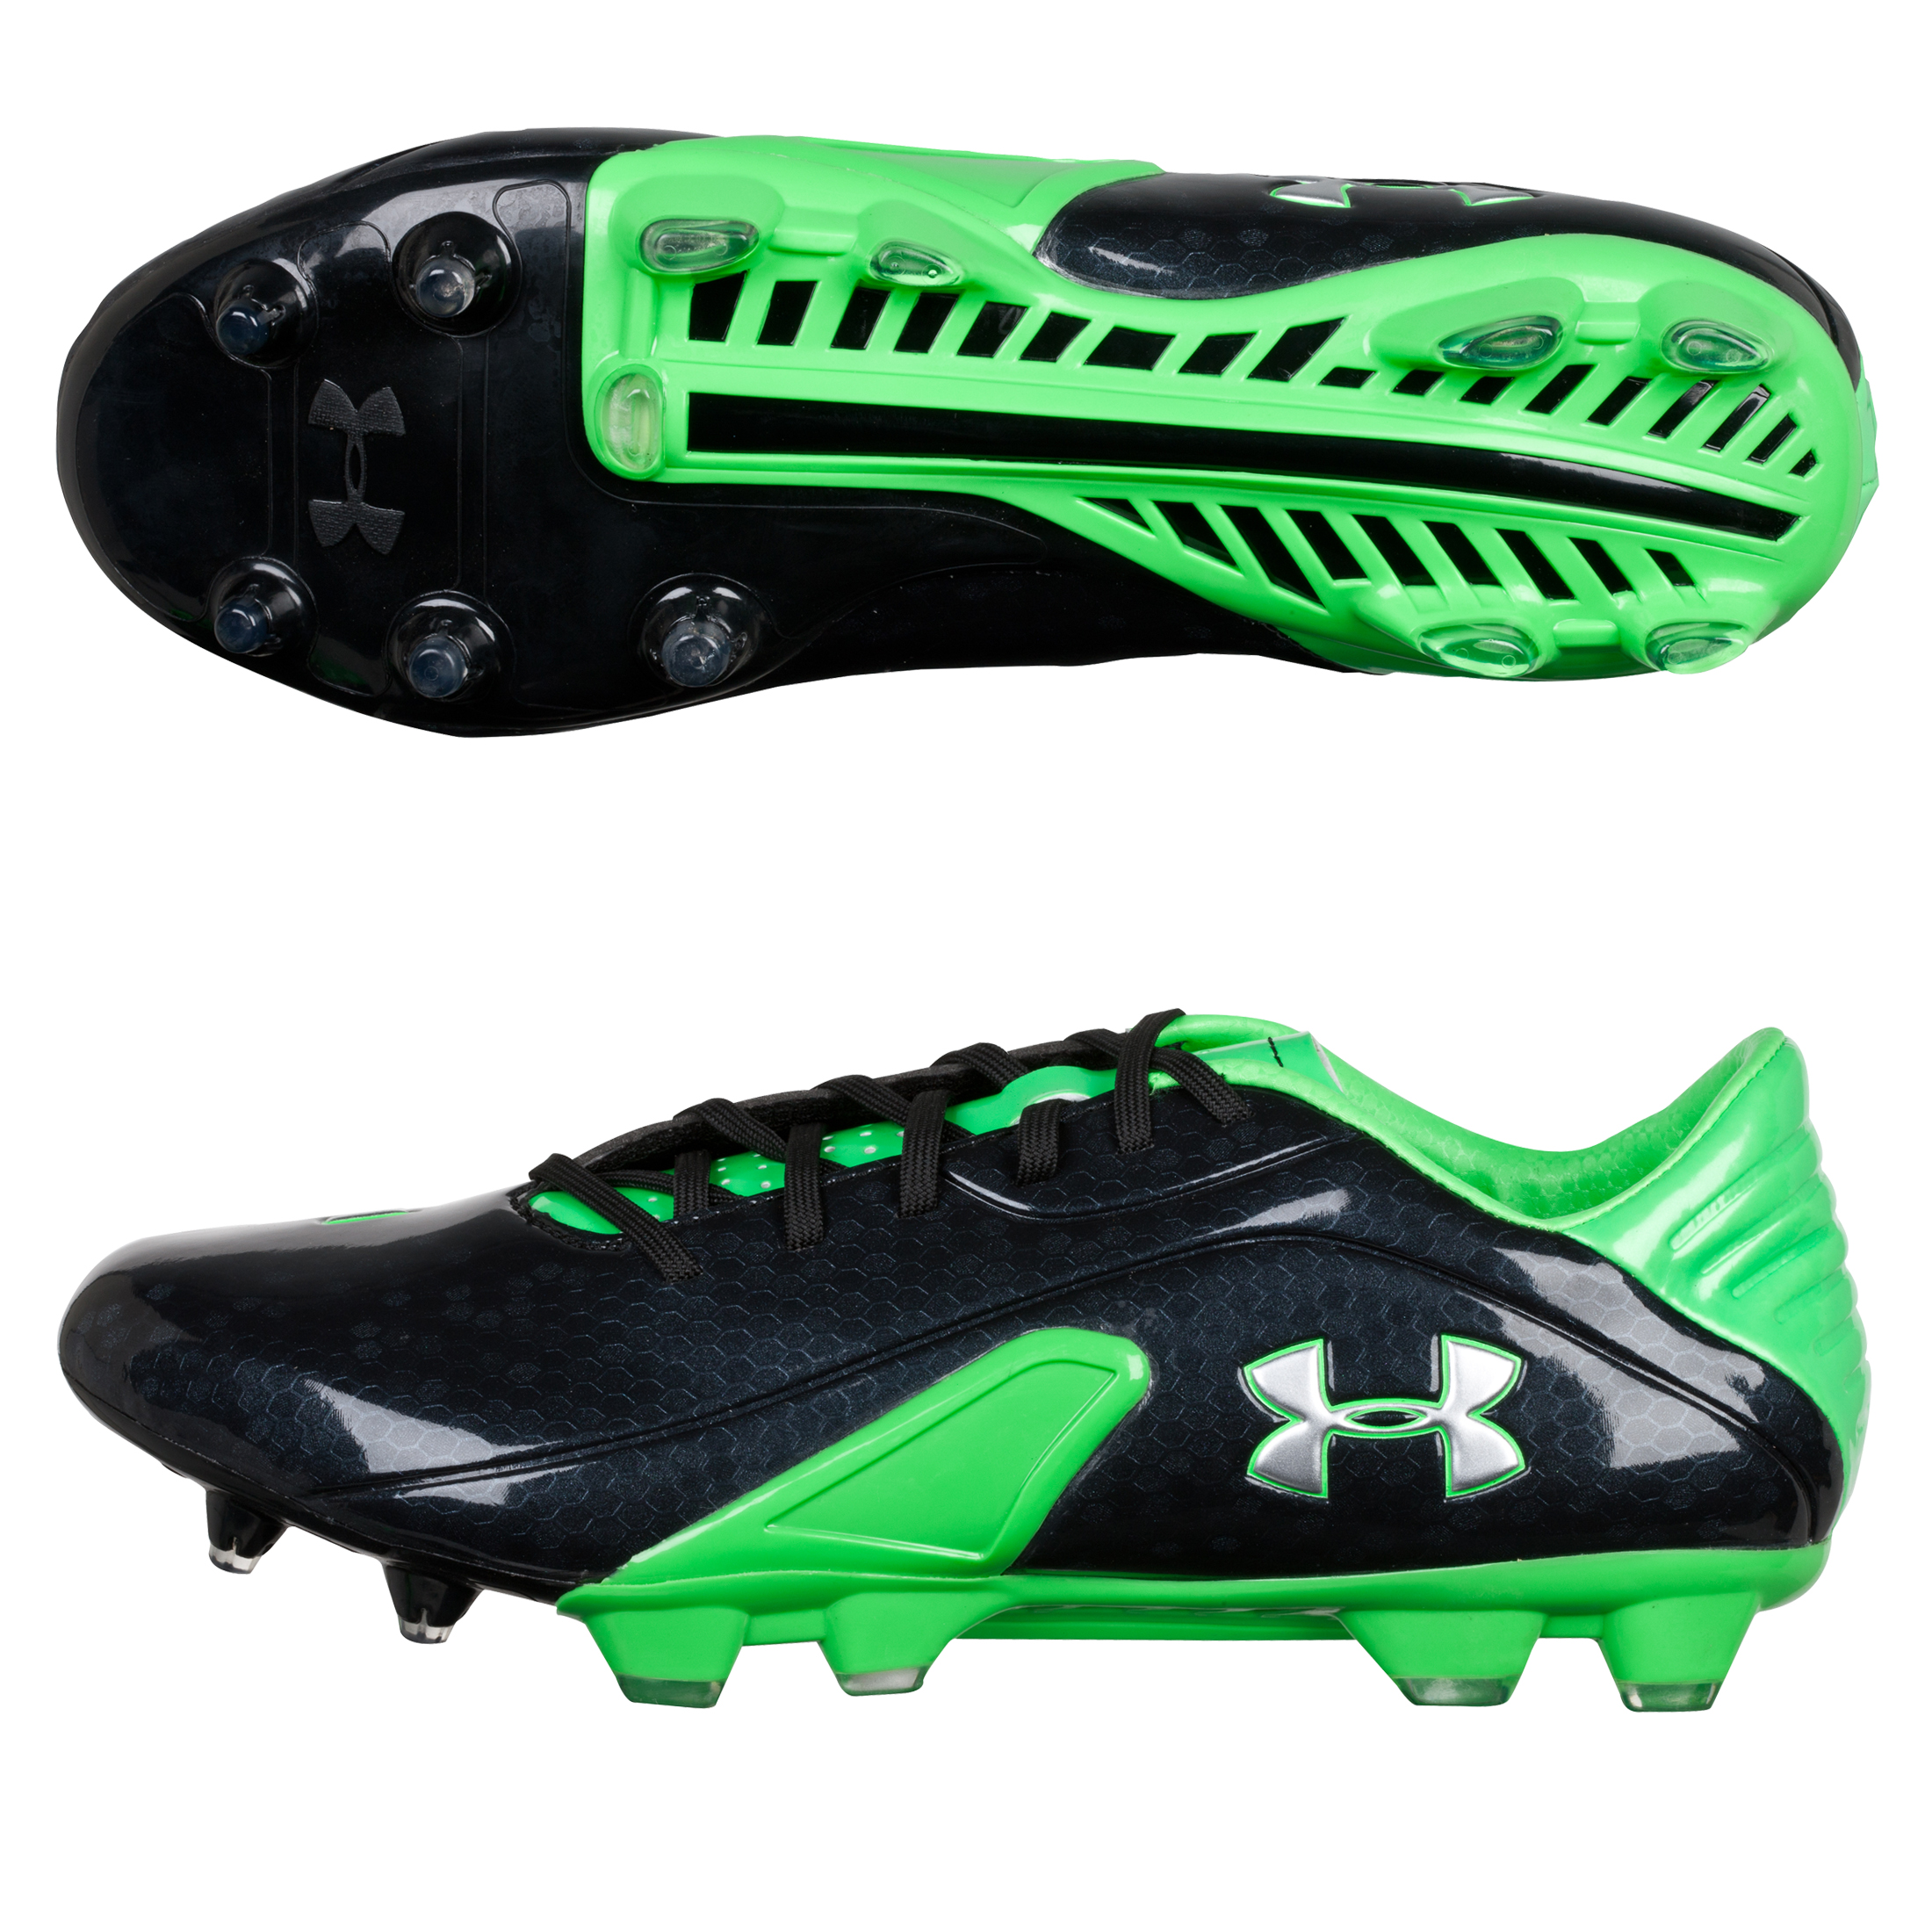 Under Armour Spine Blur Firm Ground Football Boots - Black/Poison/Metallic Silver